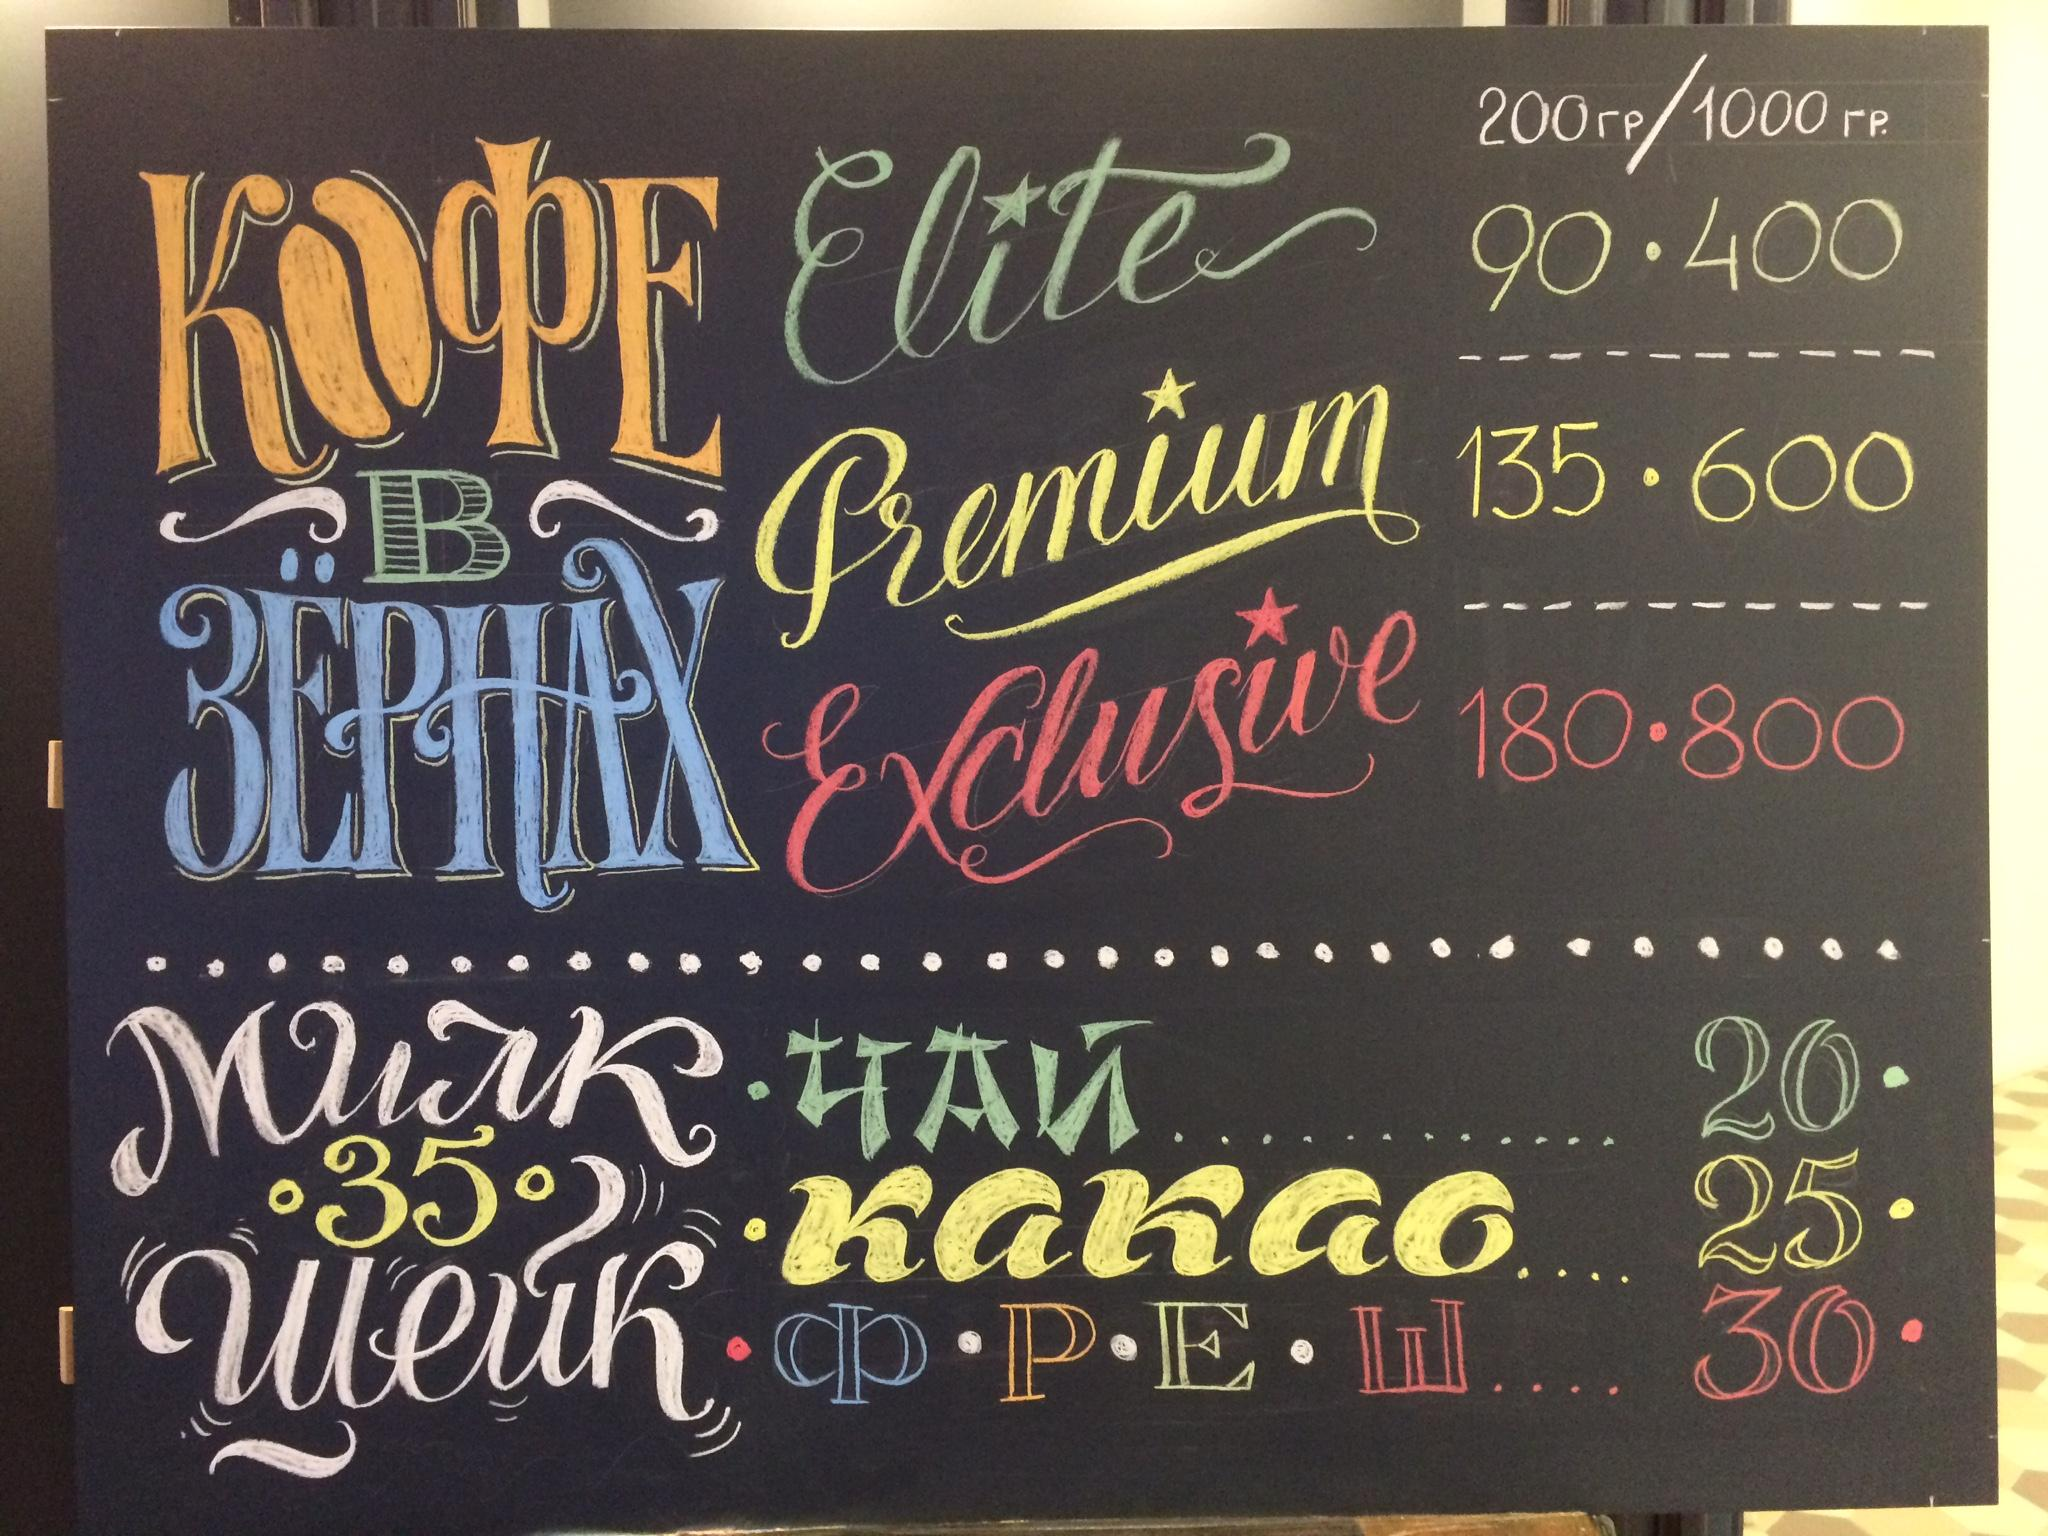 """Chalkboard menu for the """"9 bar"""" cafe, located in Minsk, Belarus - image 3 - student project"""